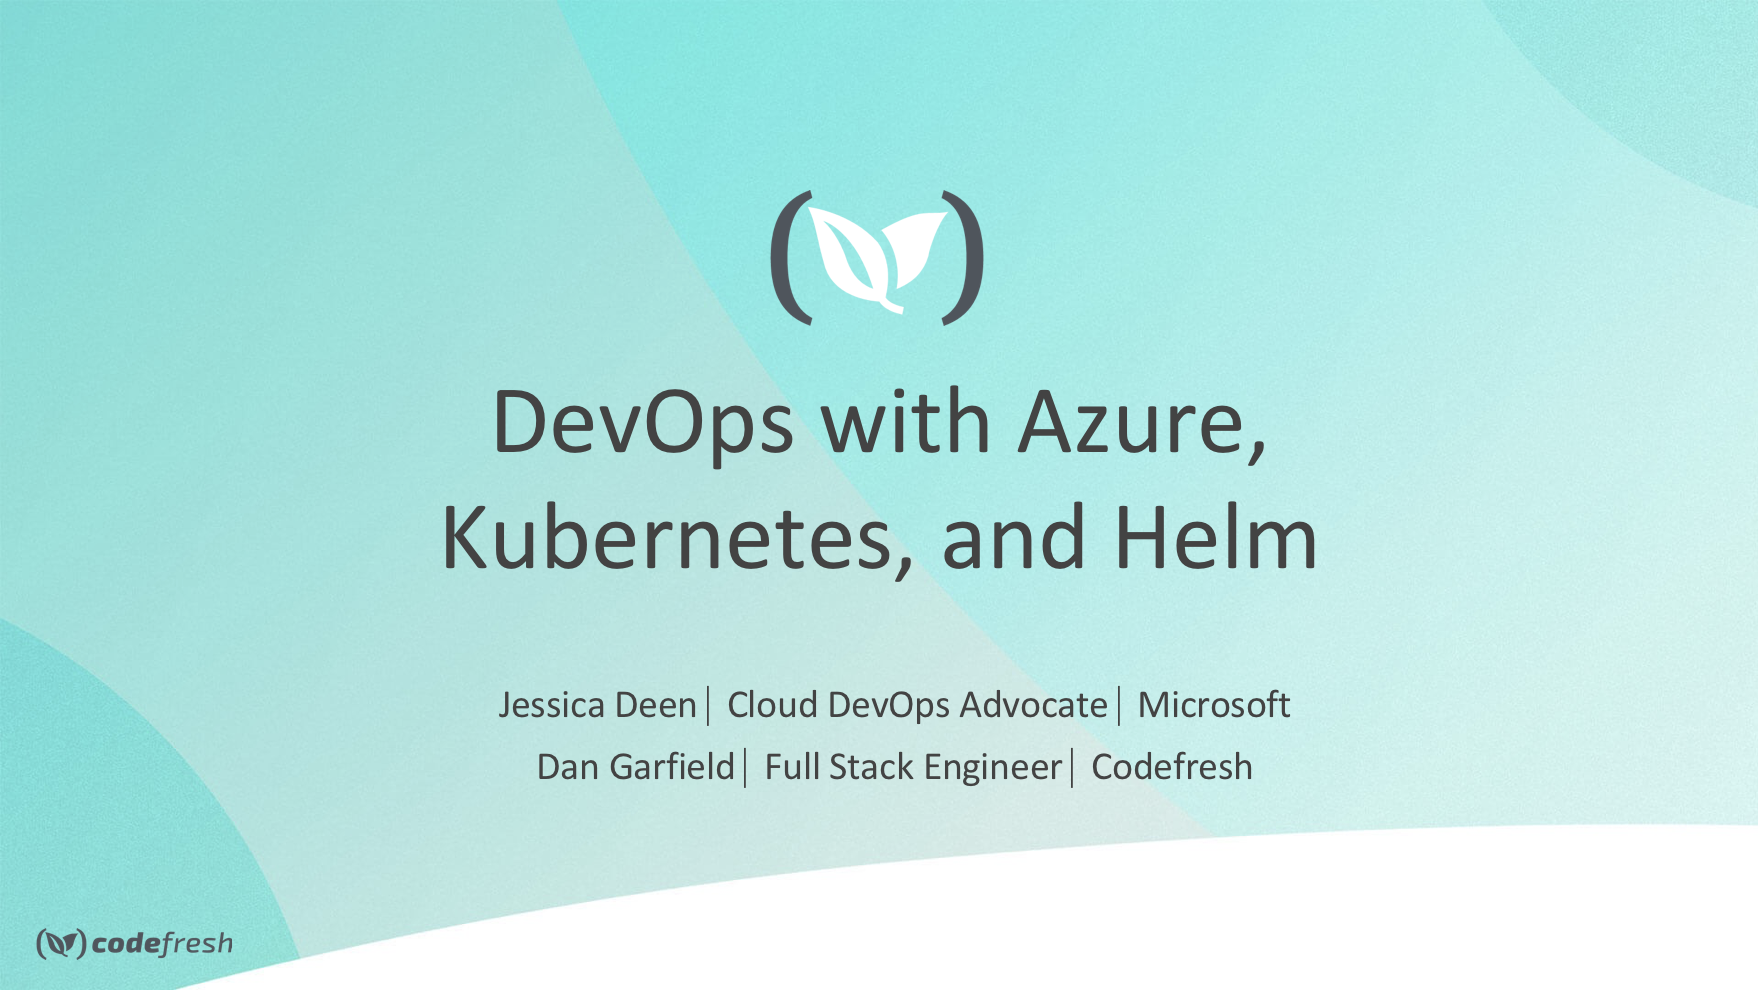 Codefresh+Azure: DevOps, Kubernetes, Helm Webinar